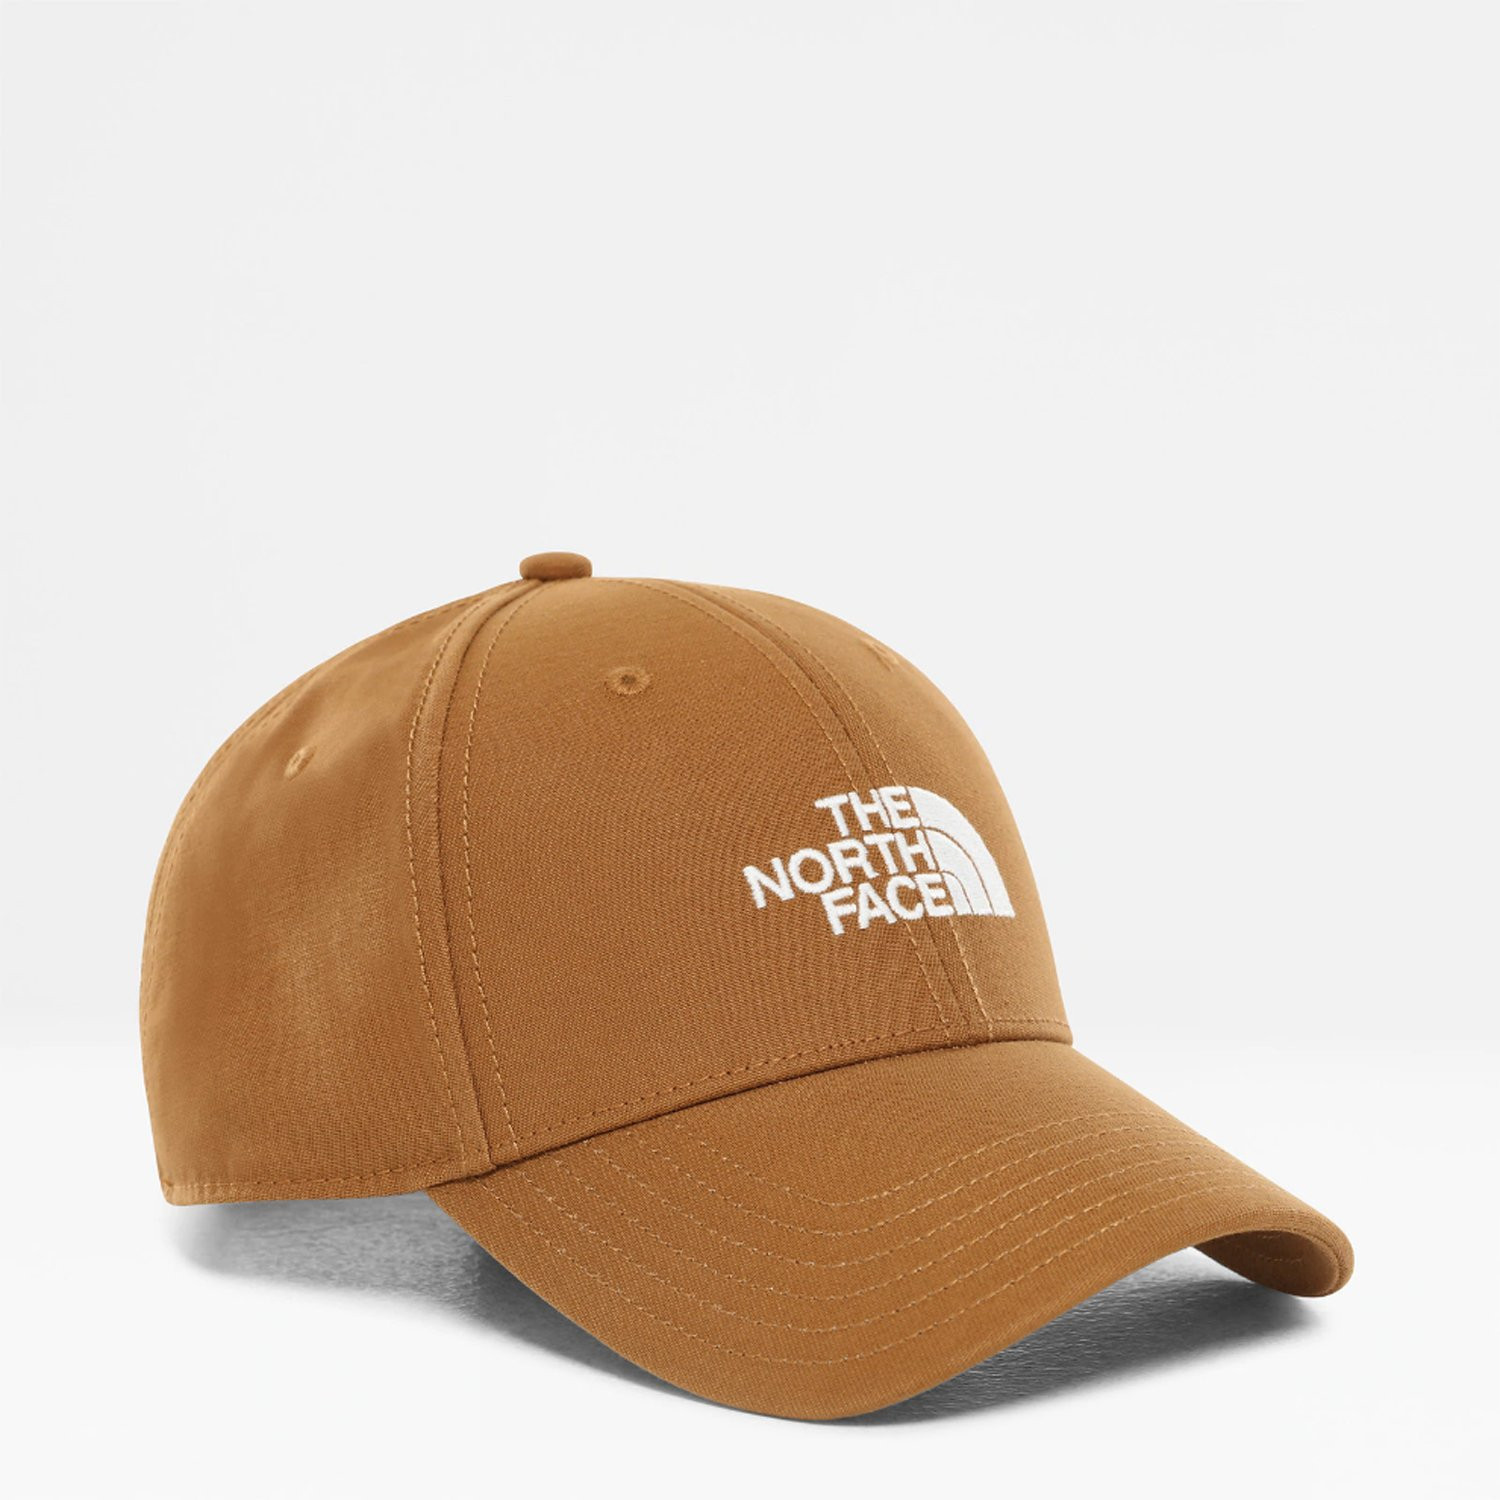 THE NORTH FACE 66 CLASSIC HAT (9000036530_41136)